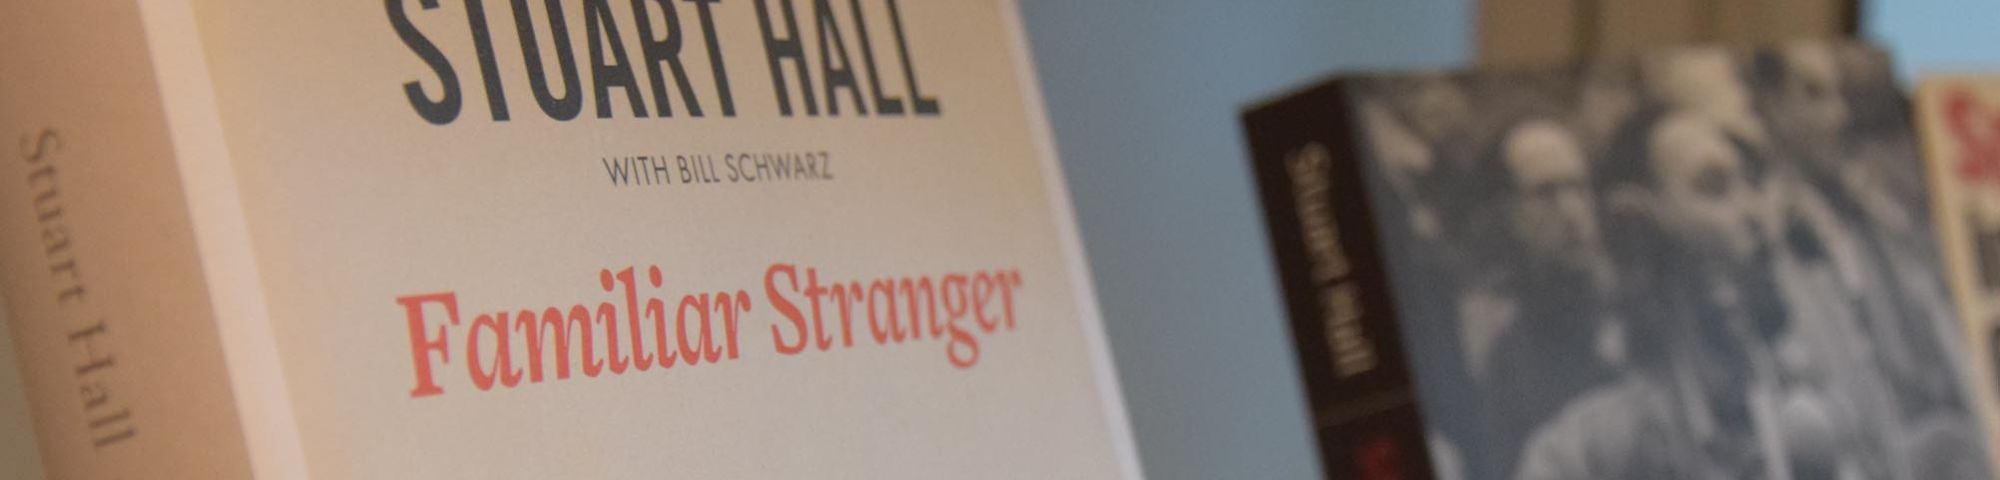 A close up of the cover of the book Familiar Stranger by Stuart Hall